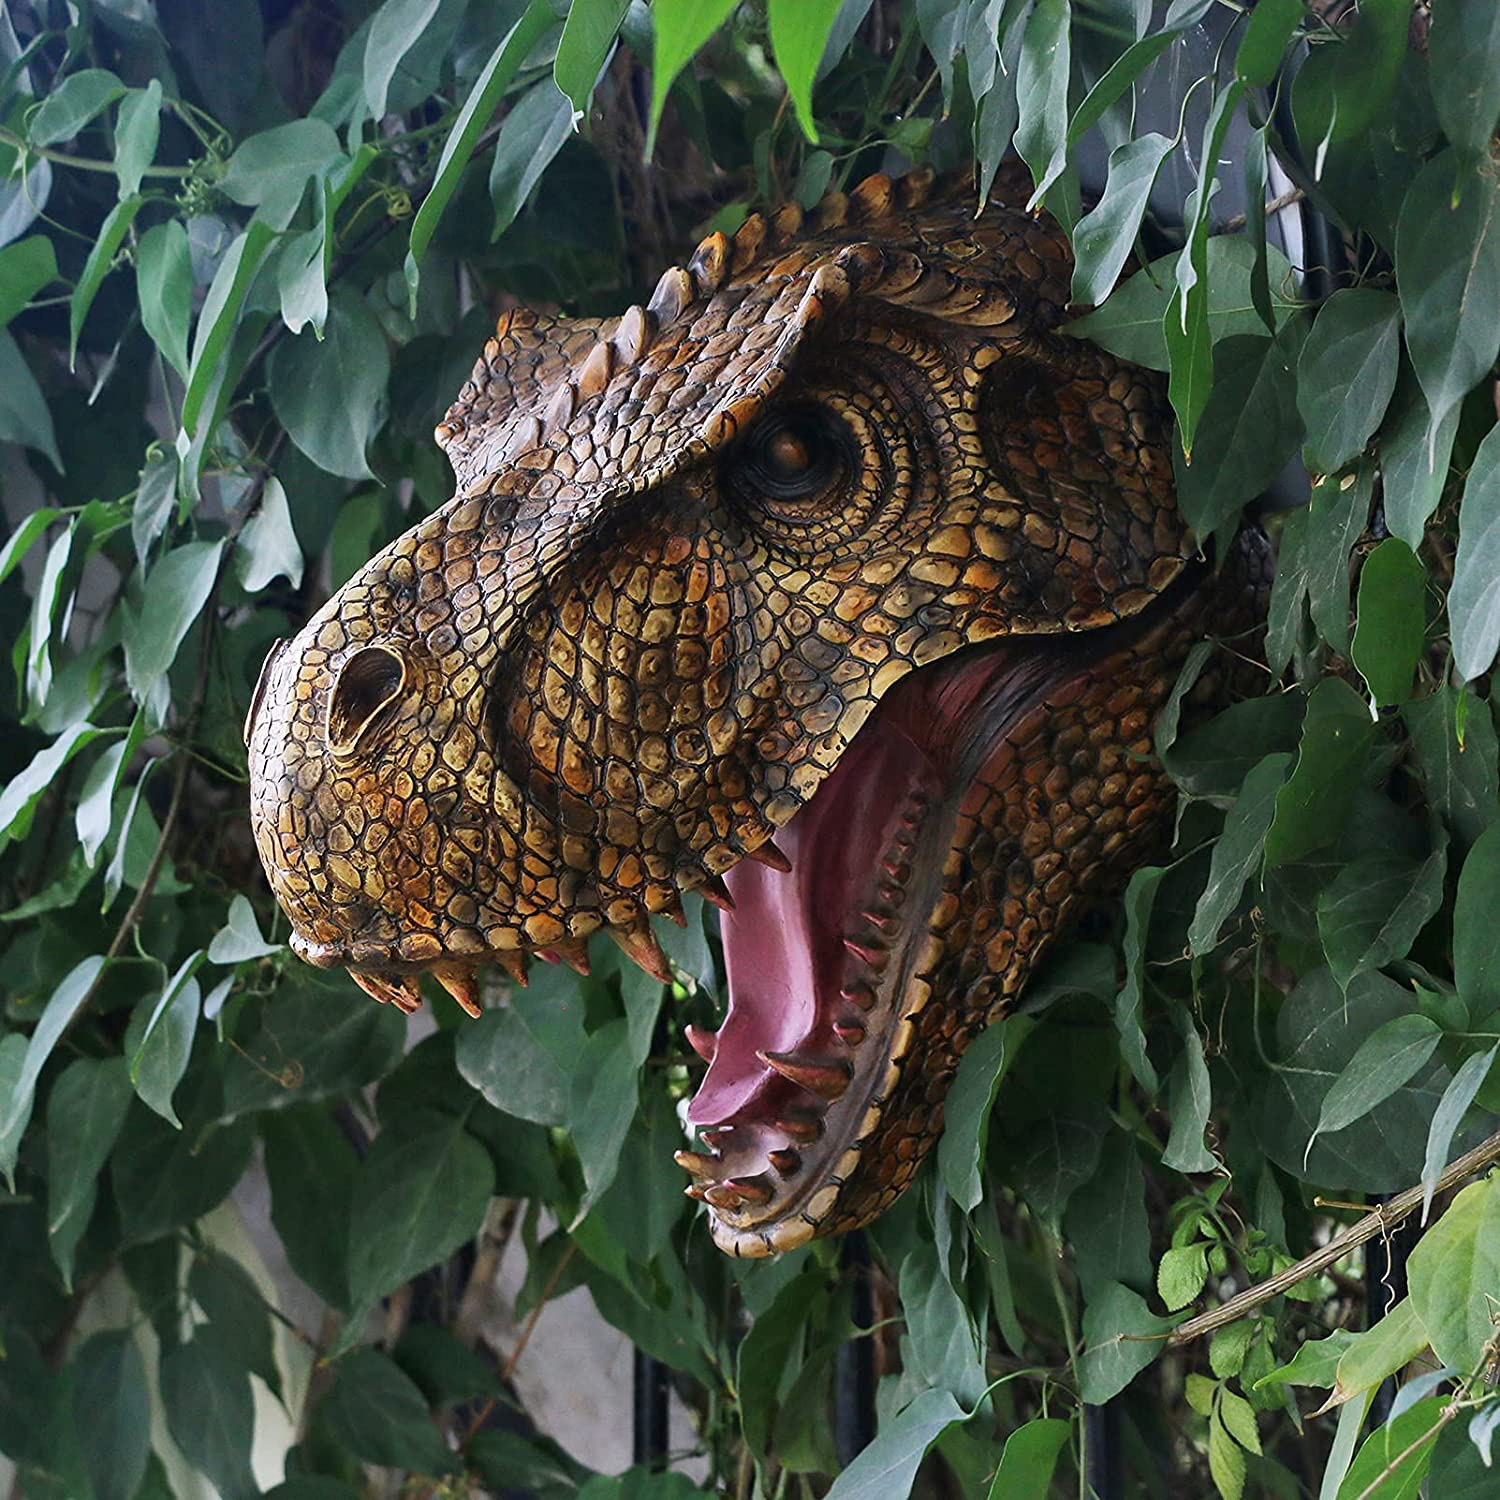 Jurassic Dinosaur Head Fees free Wall hanging T-Rex security Large - Mounted S